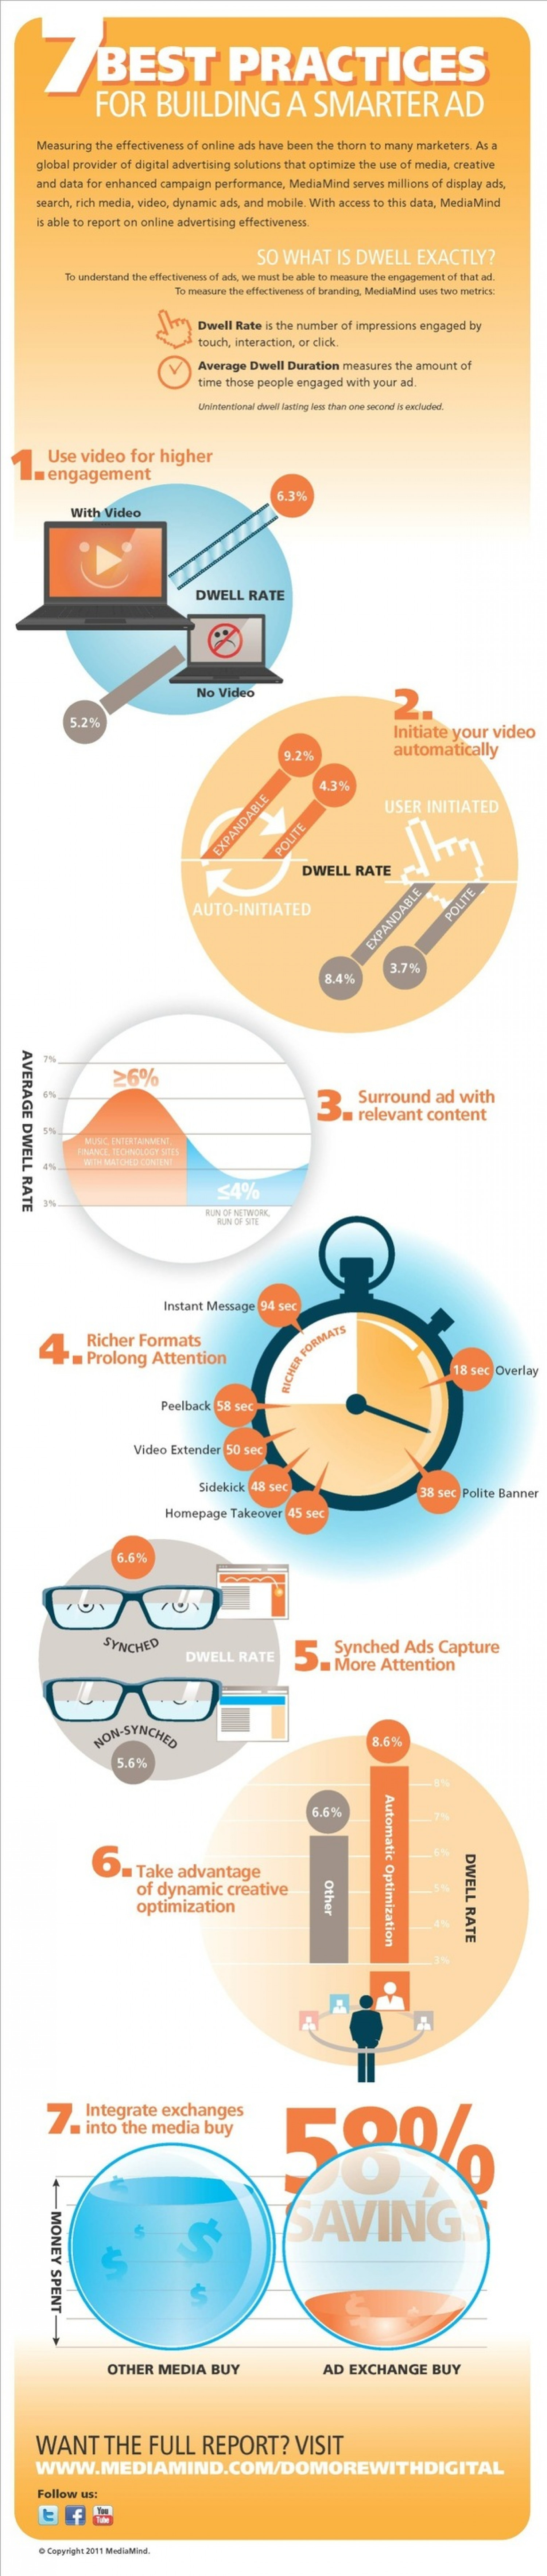 7 Best Practices for Building a Smarter Ad Infographic